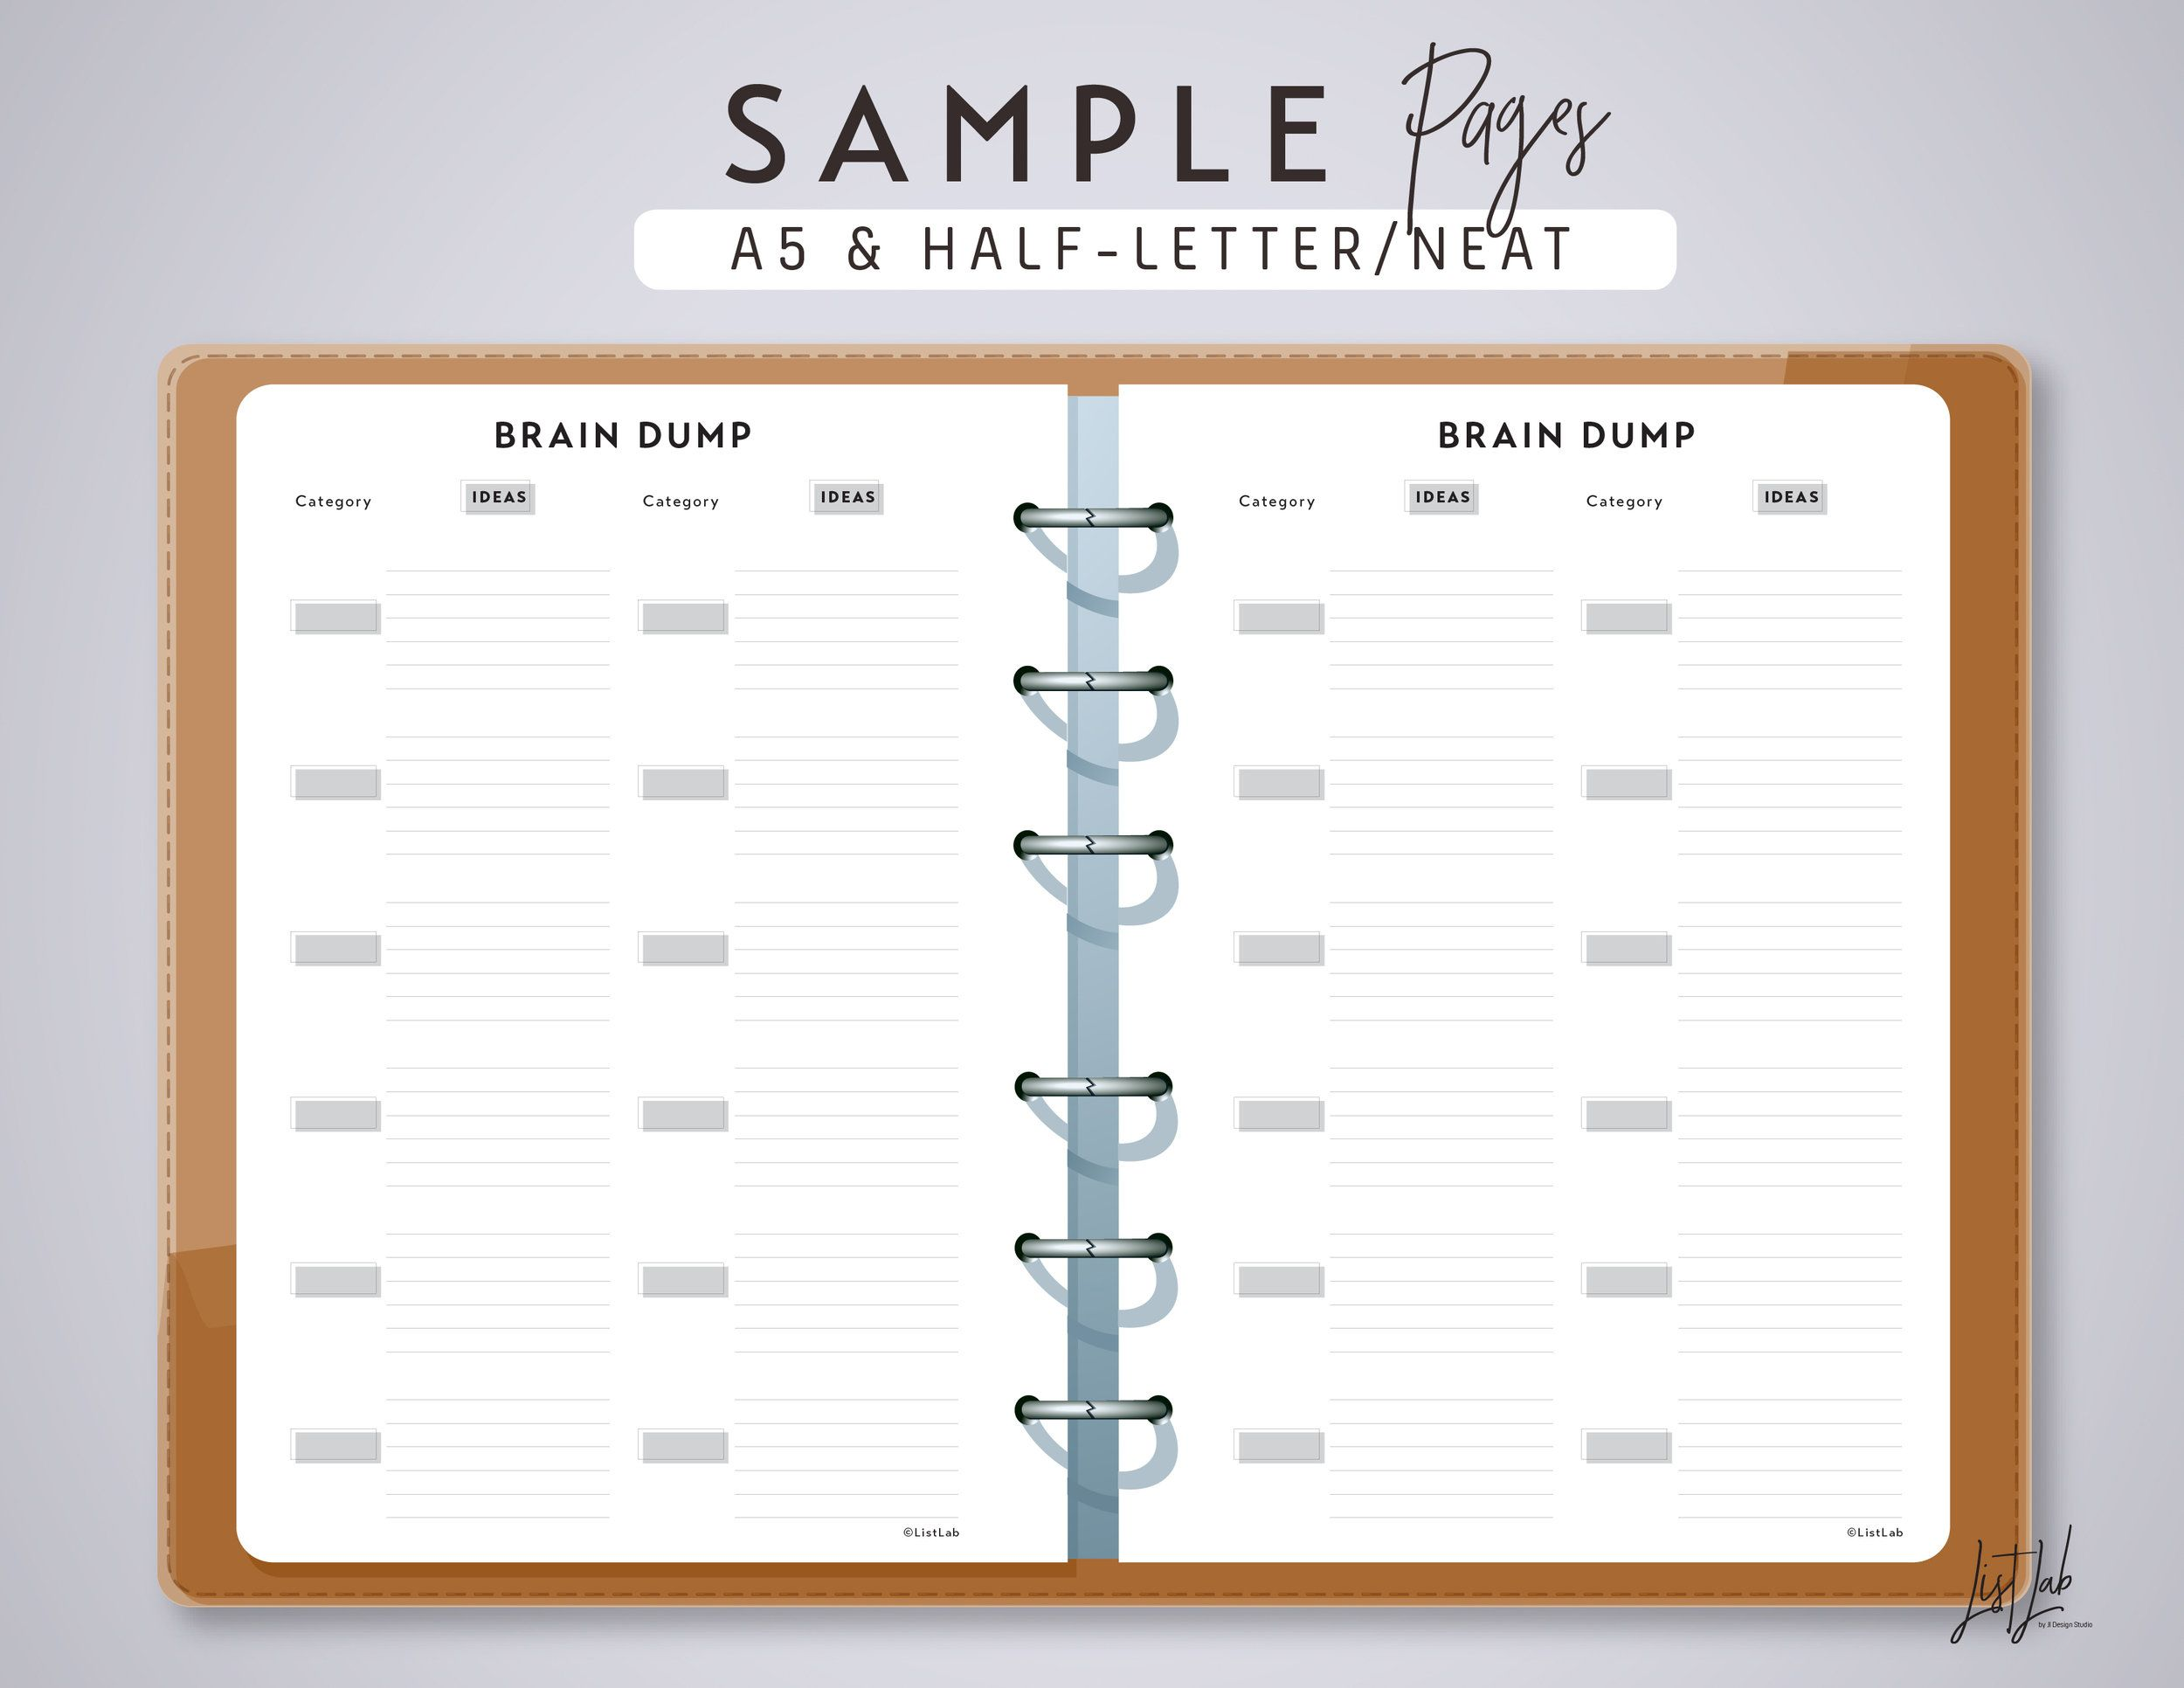 printable brain dump page in a5half letter size for 4 types of paper a4 letter size a5 and half letter fits personal size planner like filofax a5